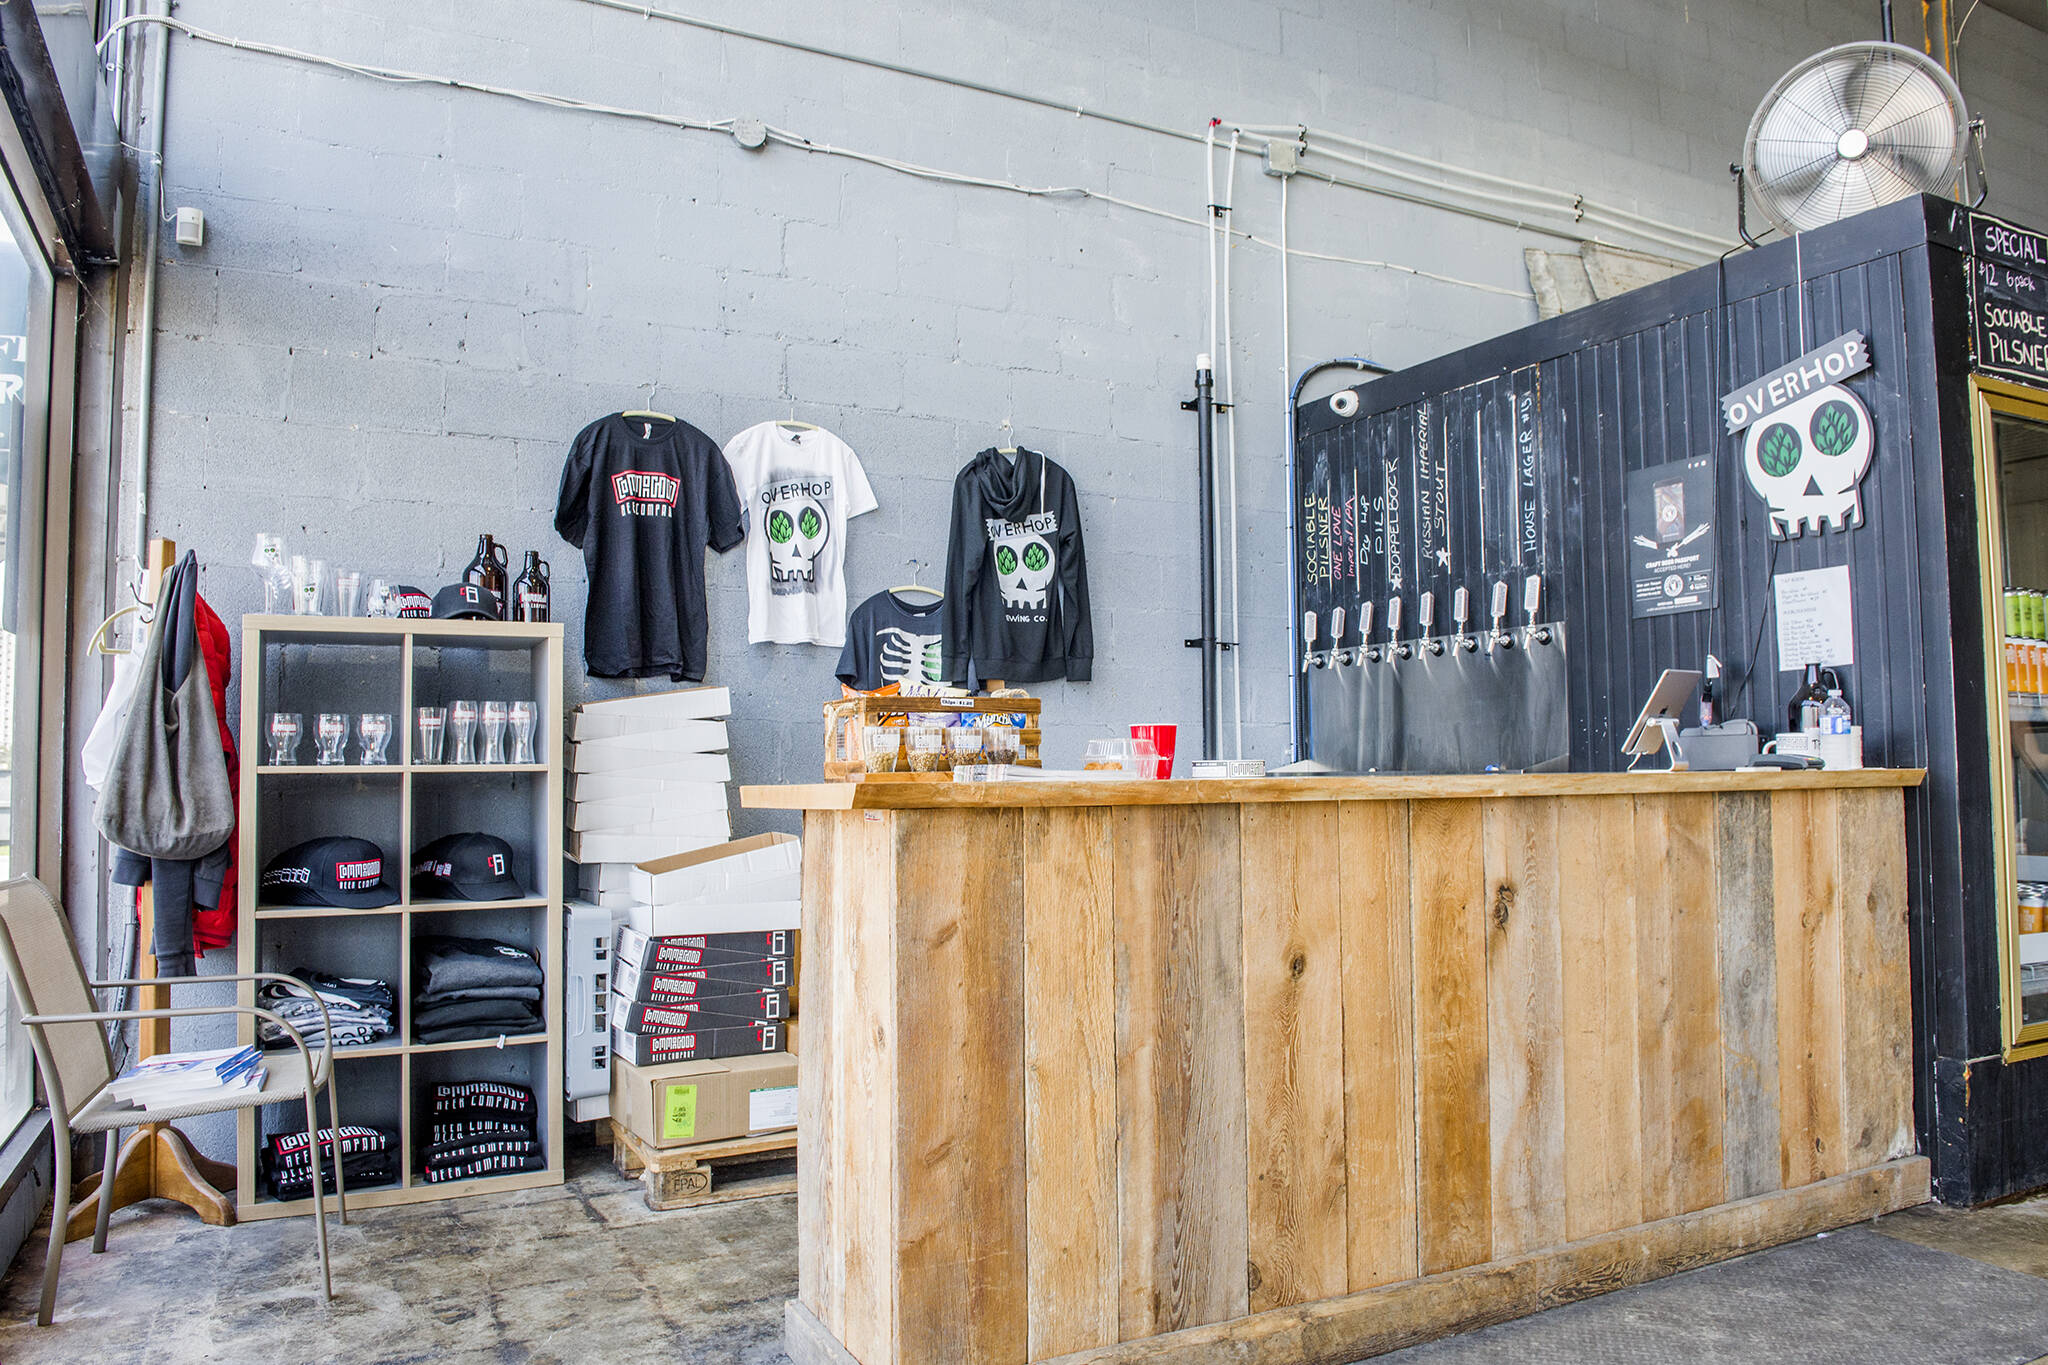 Craft brewers that have retail stores in Toronto